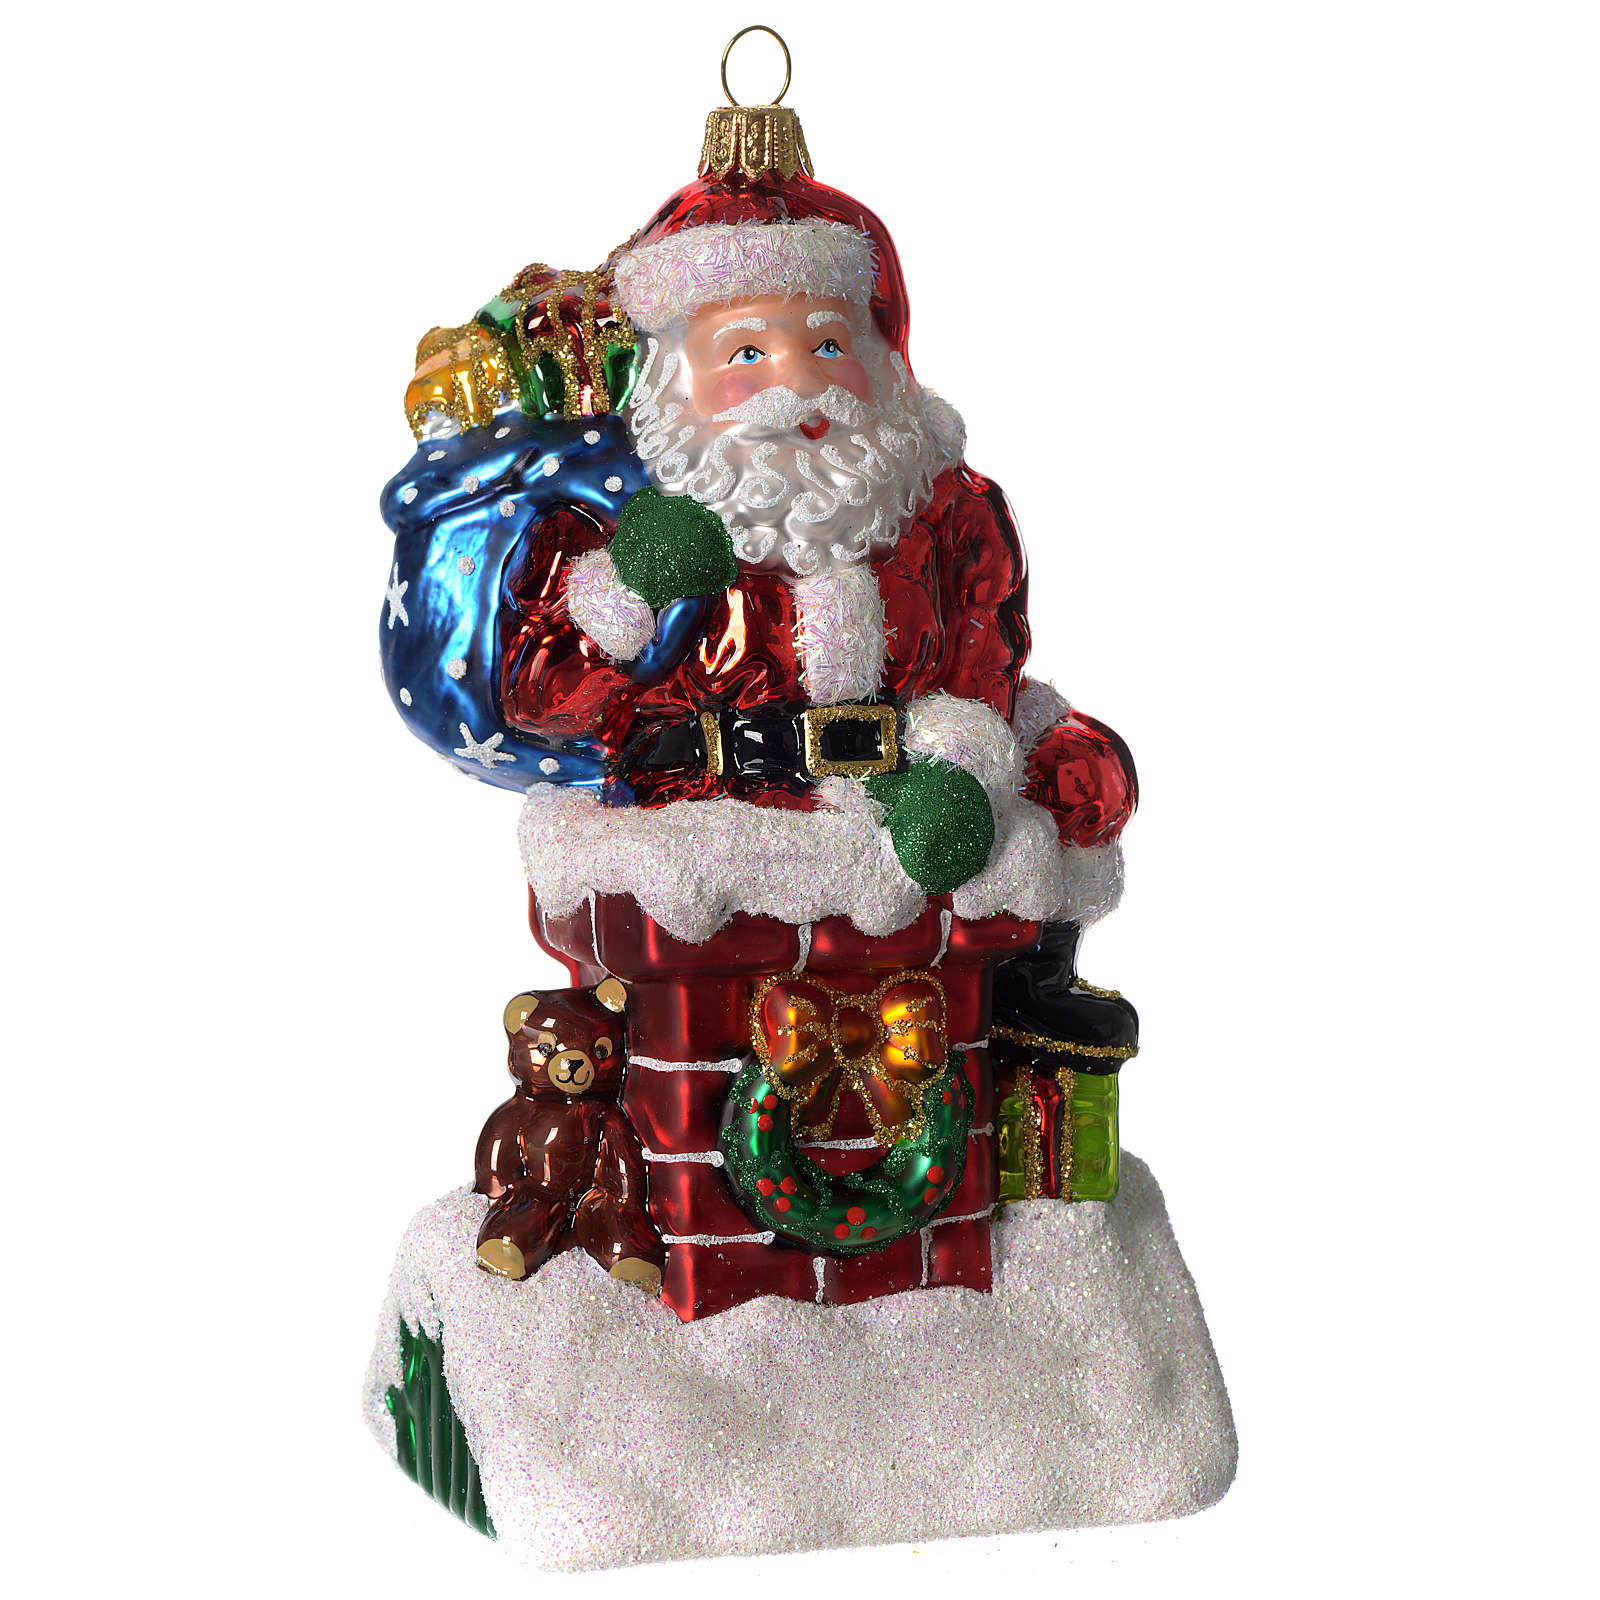 Santa Claus Decorations Uk: Santa Claus And Chimney, Christmas Tree Decoration In